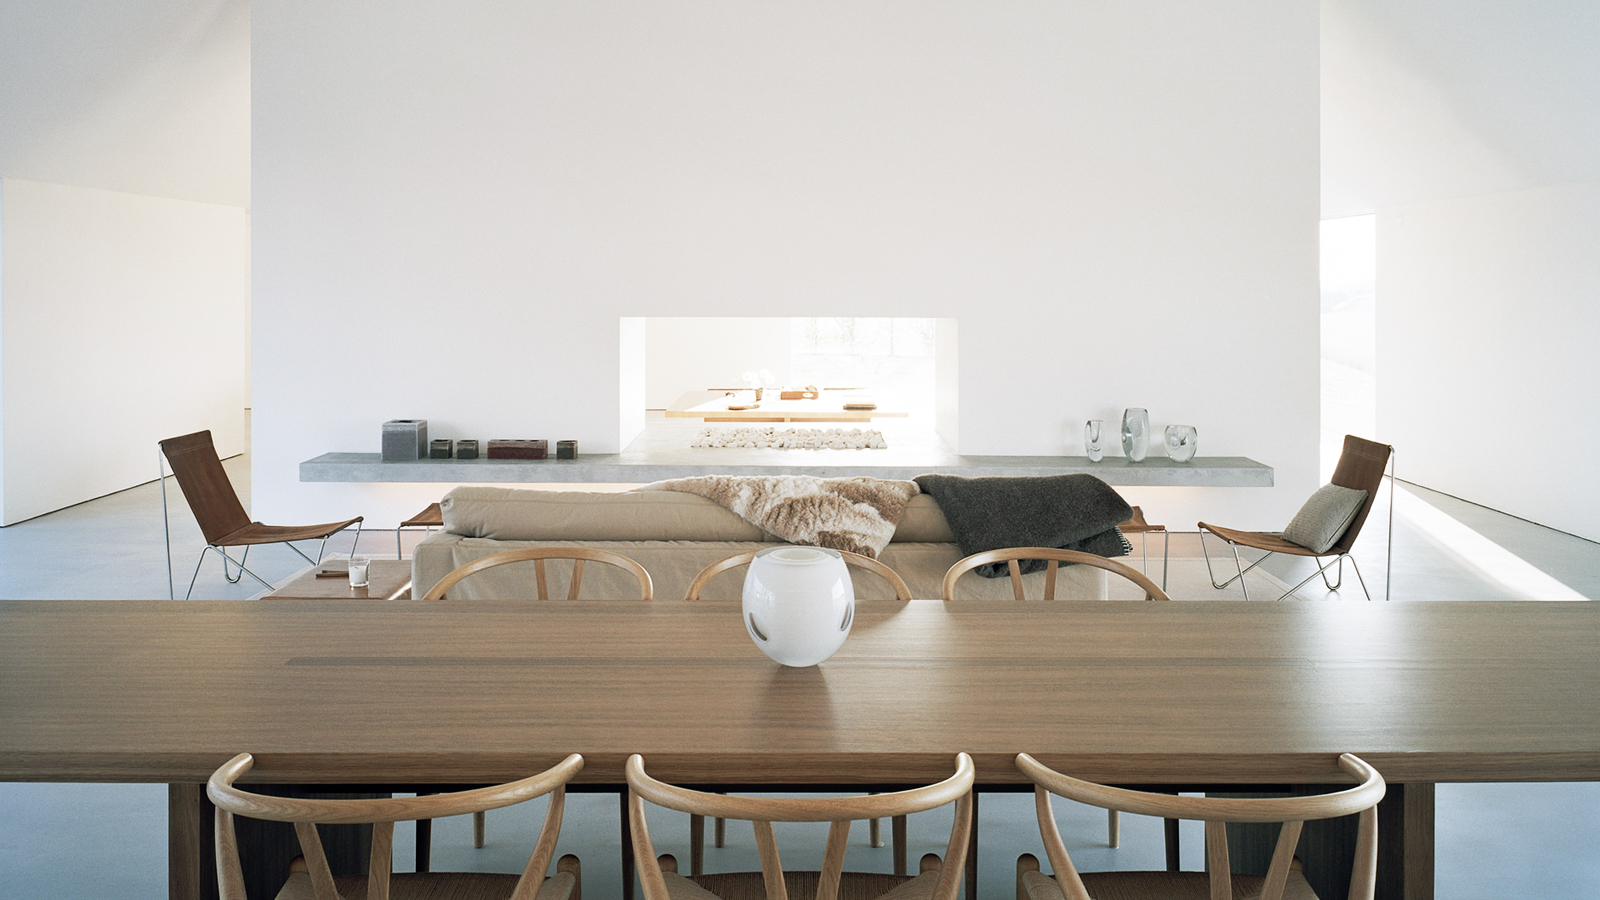 John Pawson Is A British Architectural Designer Whose Work Is Known For Its Minimalist Aesthetic His Baron House Is A Testament To The Style